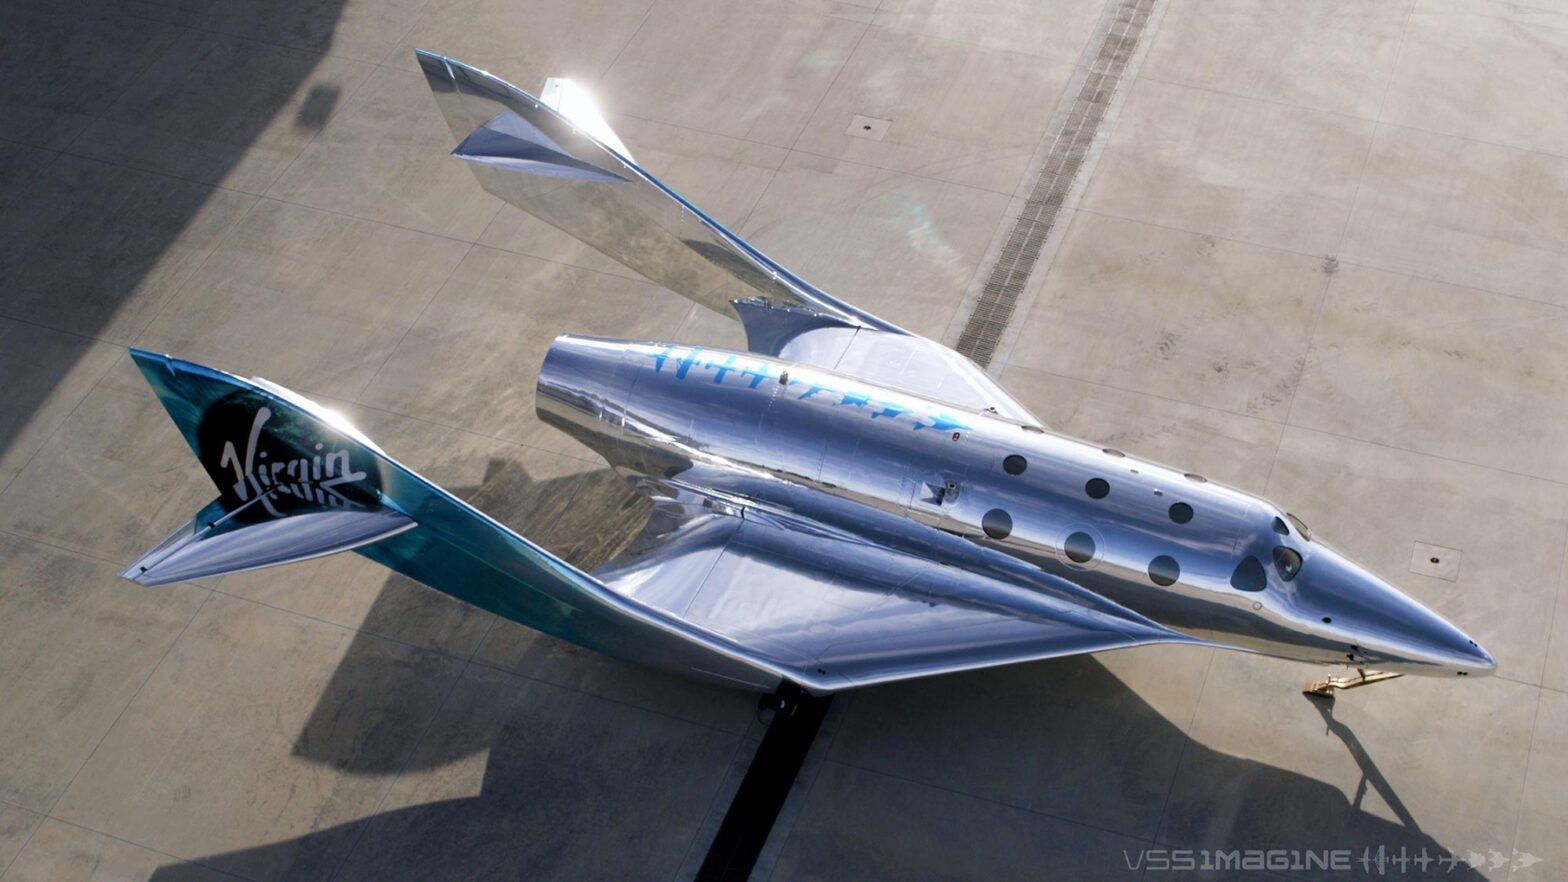 Virgin Galactic SpaceShip III VSS Imagine